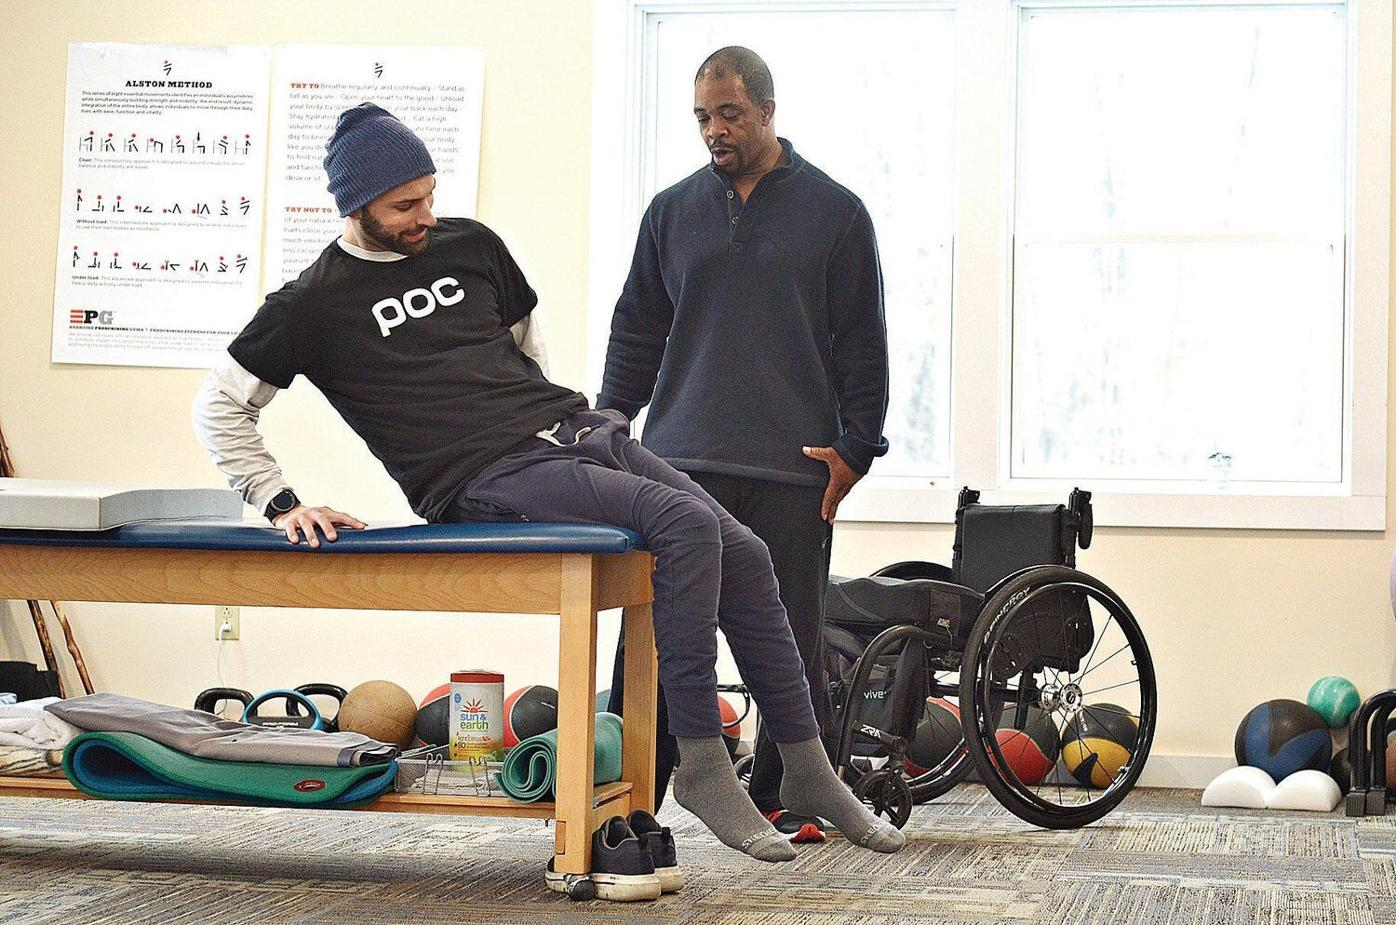 After dirt bike crash, spinal cord injury, Sheffield man aims to help the disabled community